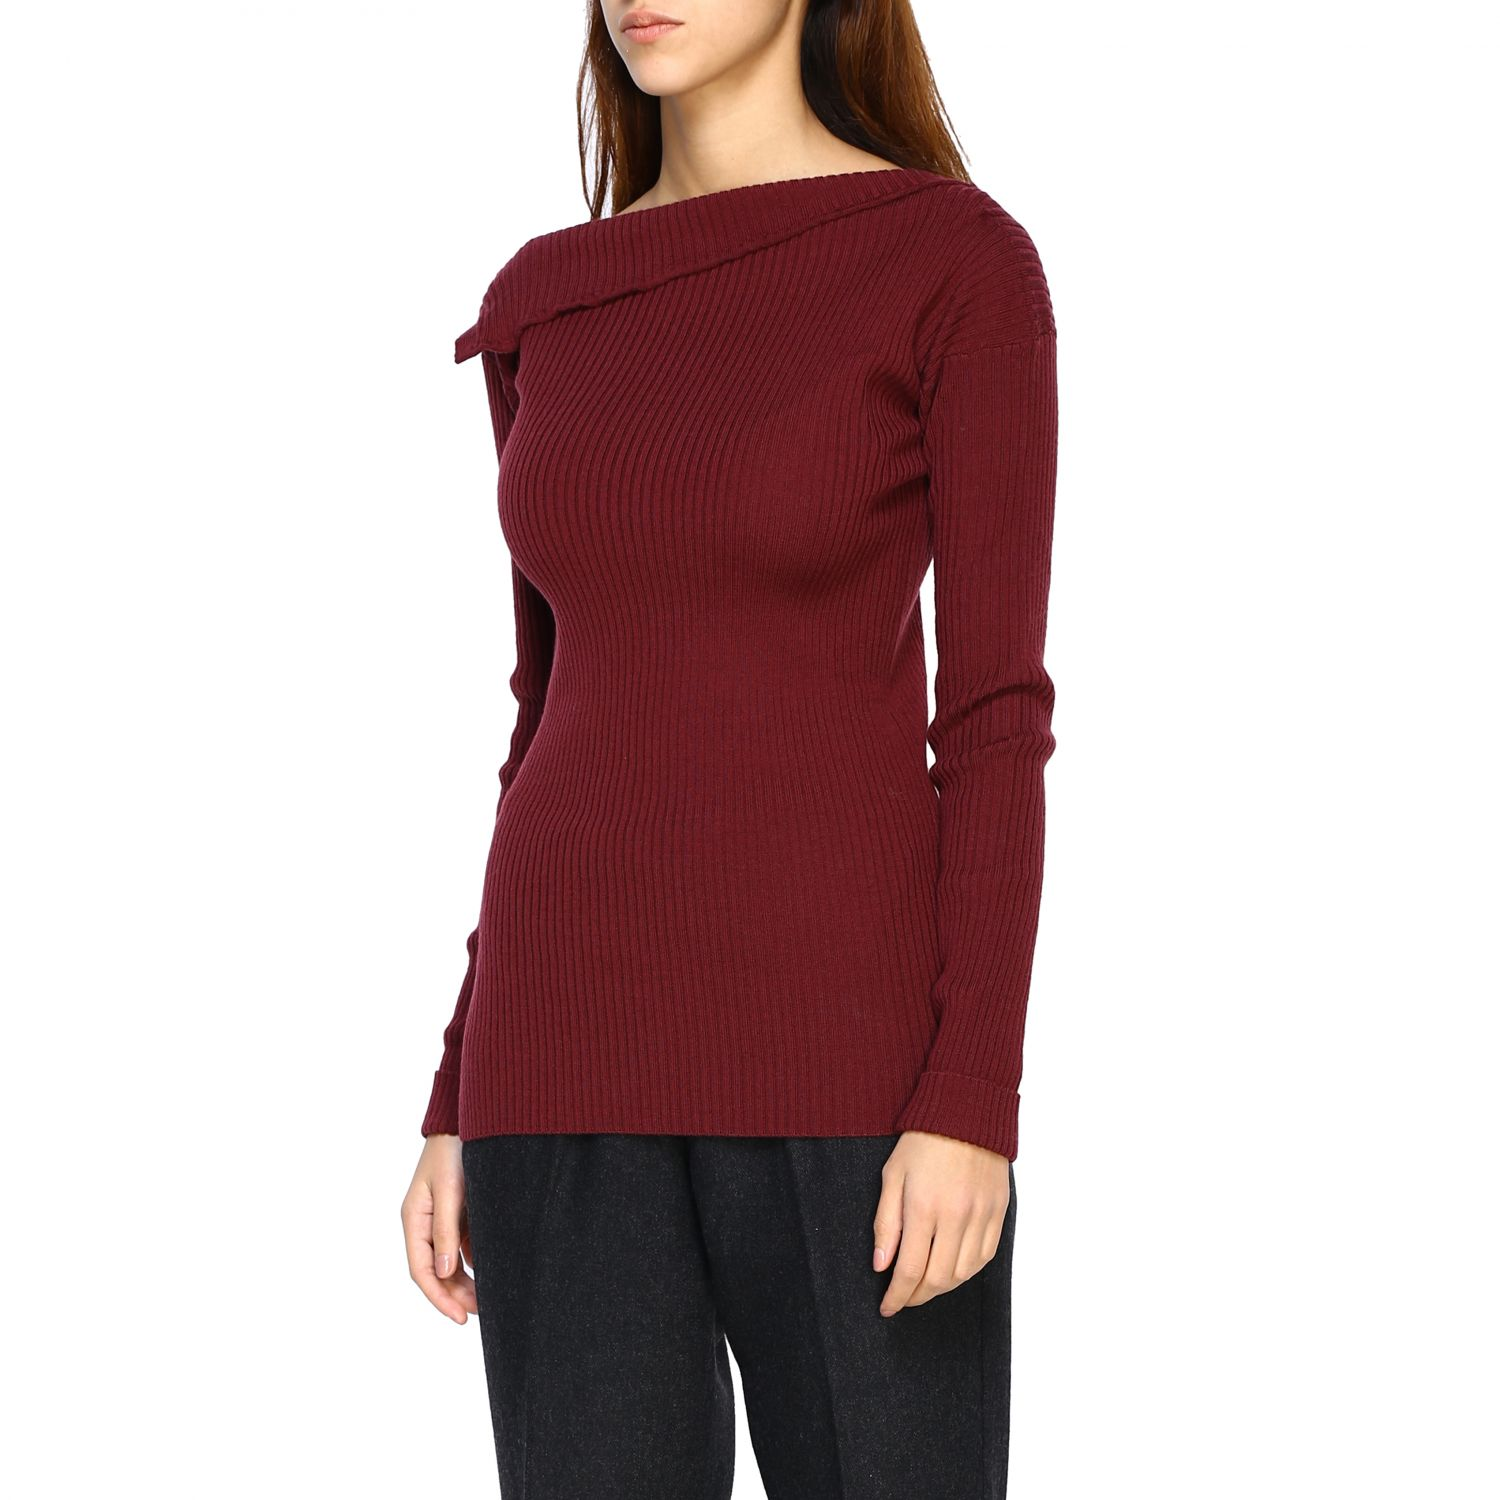 Jumper Alpha Studio: Jumper women Alpha Studio mahogany 4